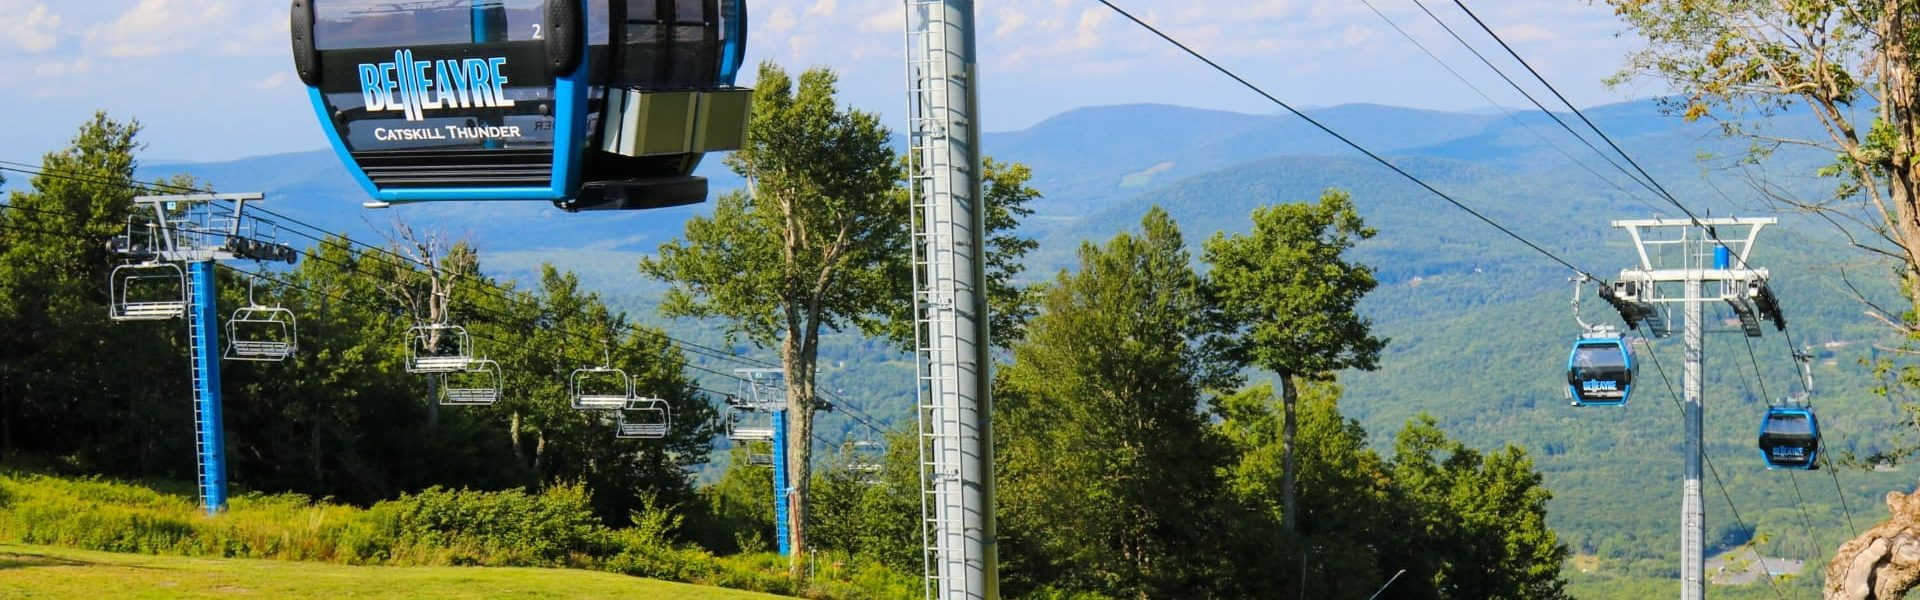 Belleayre Mountain Gondola